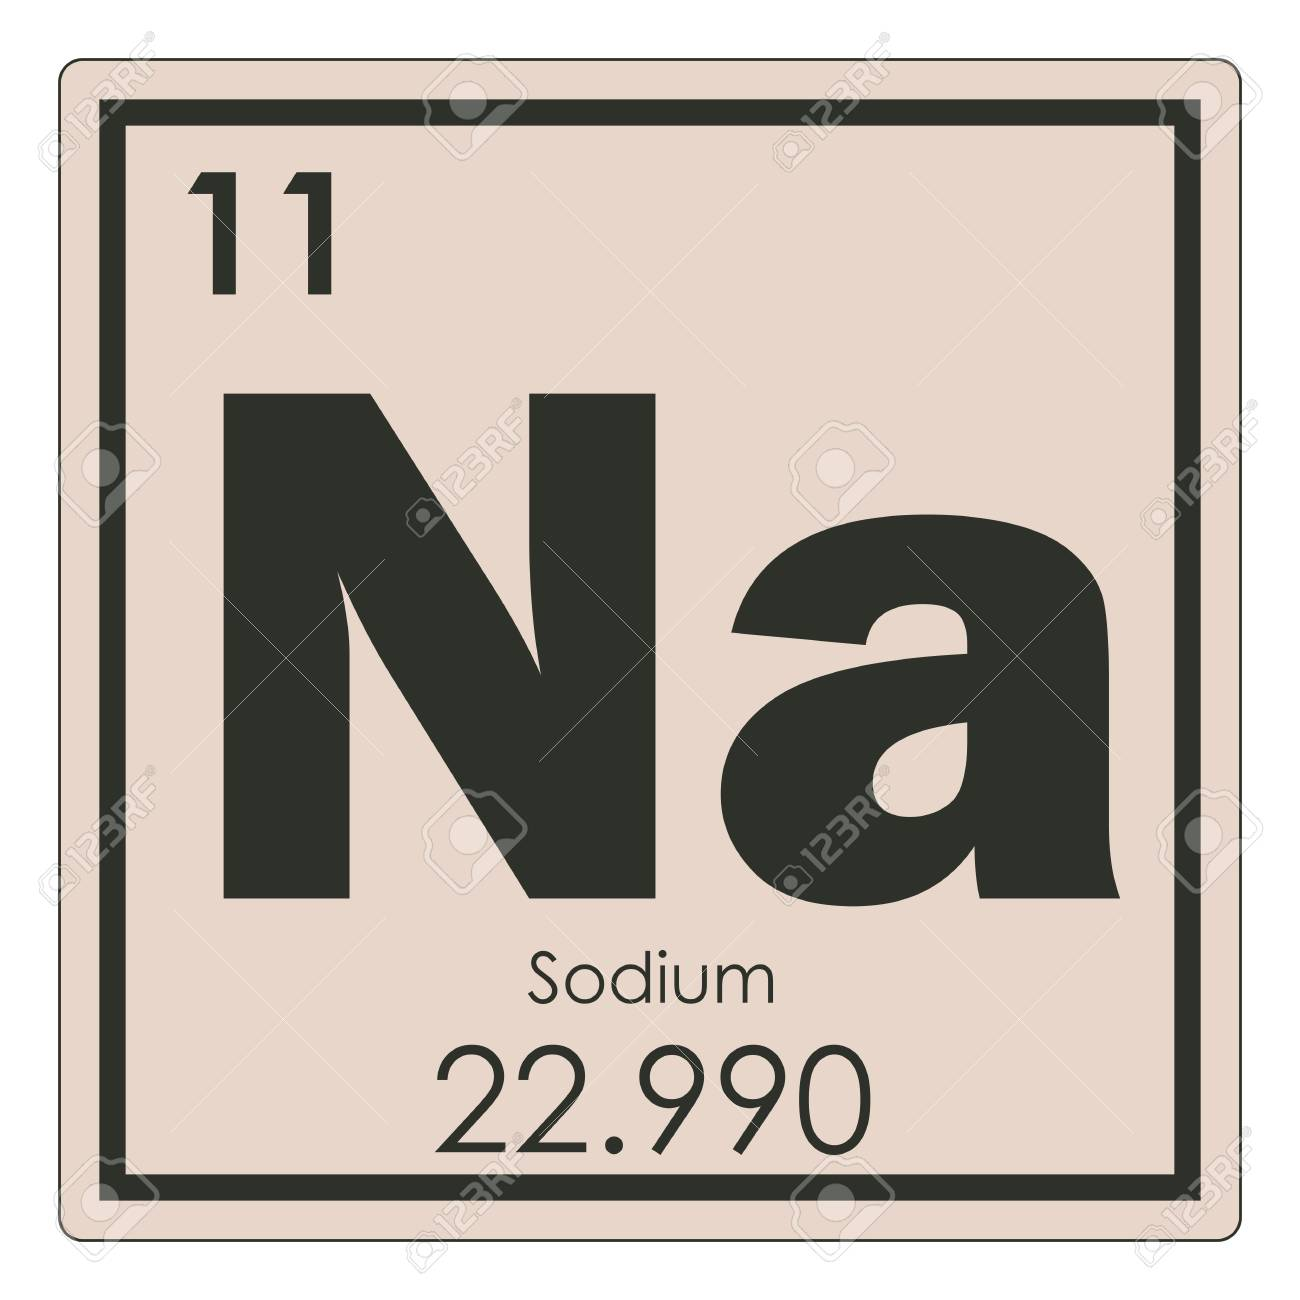 Sodium Chemical Element Periodic Table Science Symbol Stock Photo